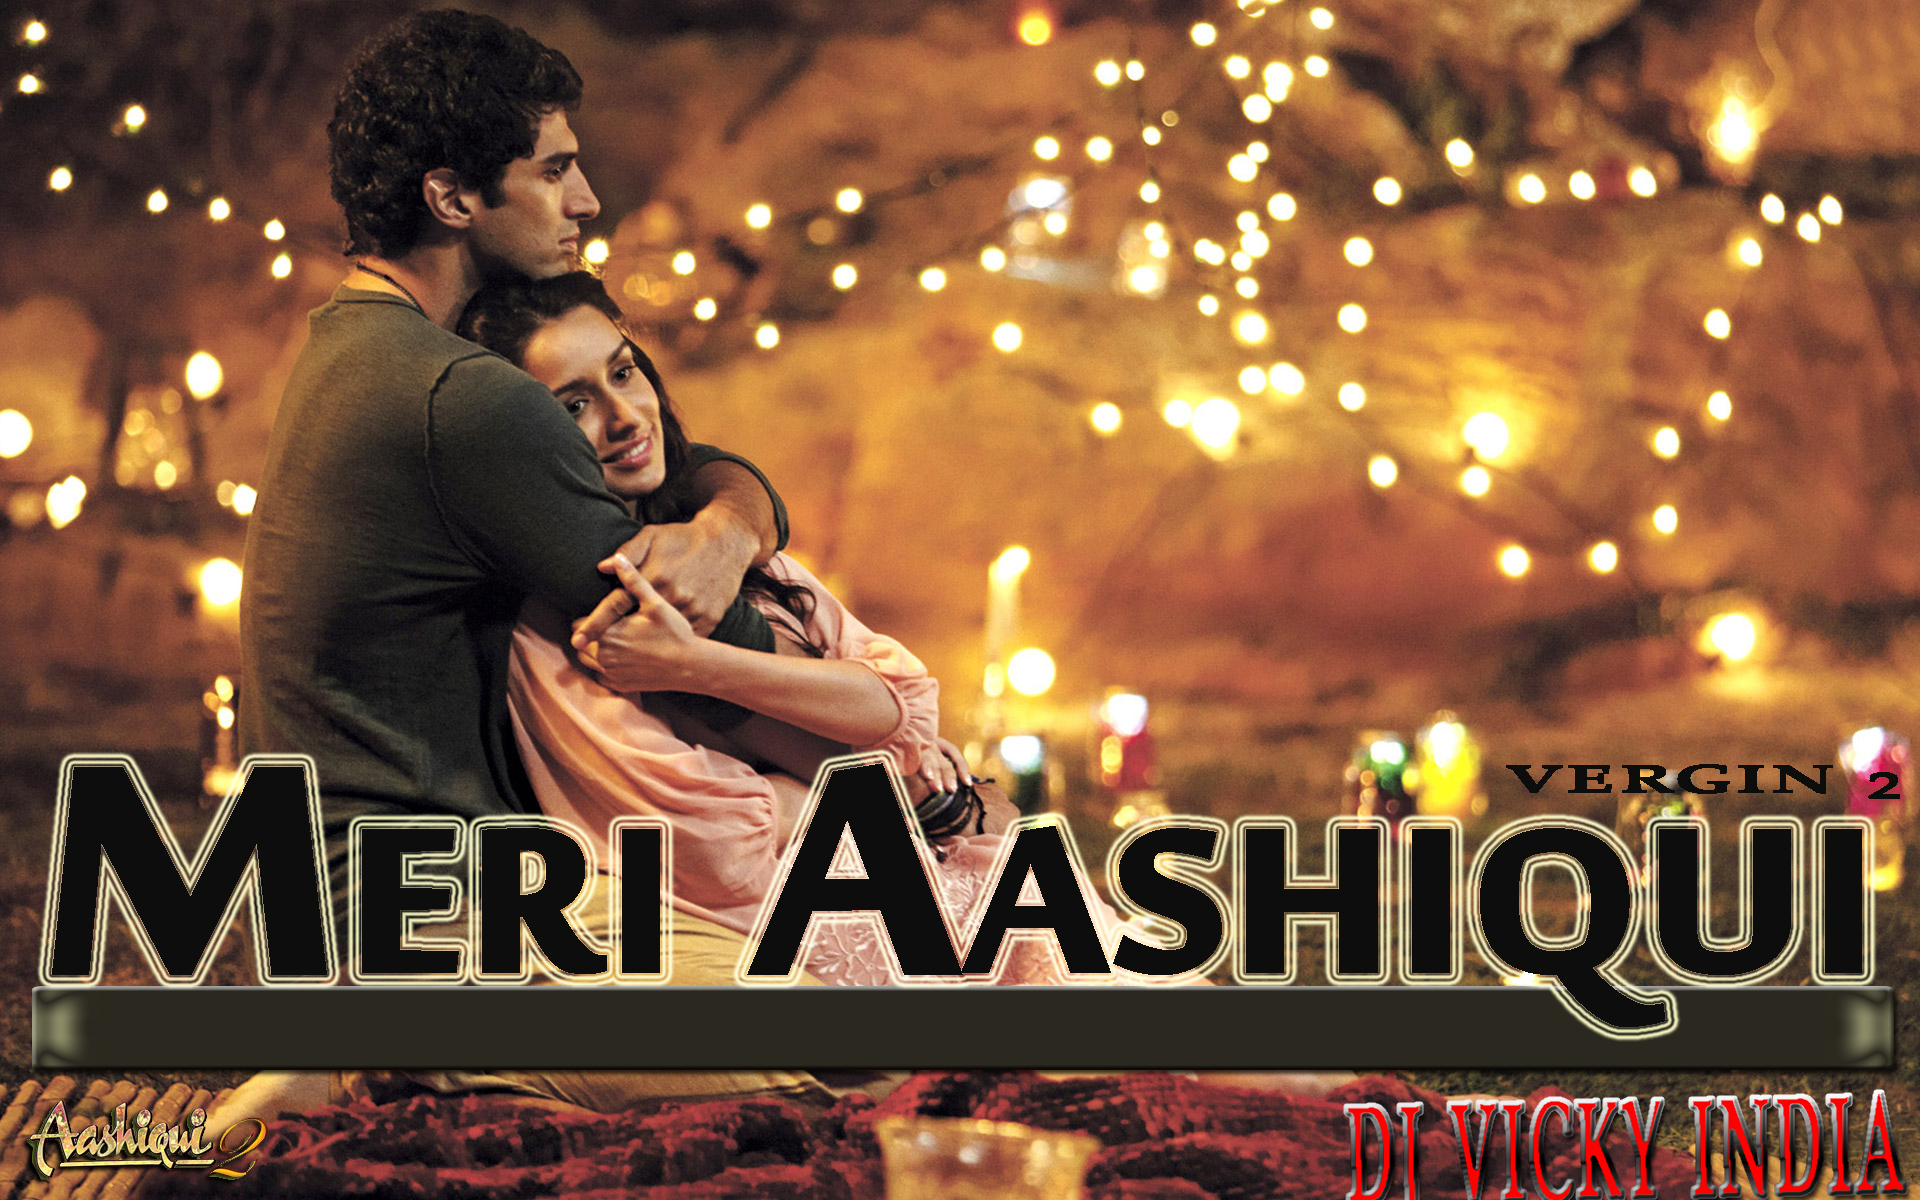 Meri Aashiqui Ab Tum Hi Ho Female Download Music Mp3 And Video Clips + lyrics